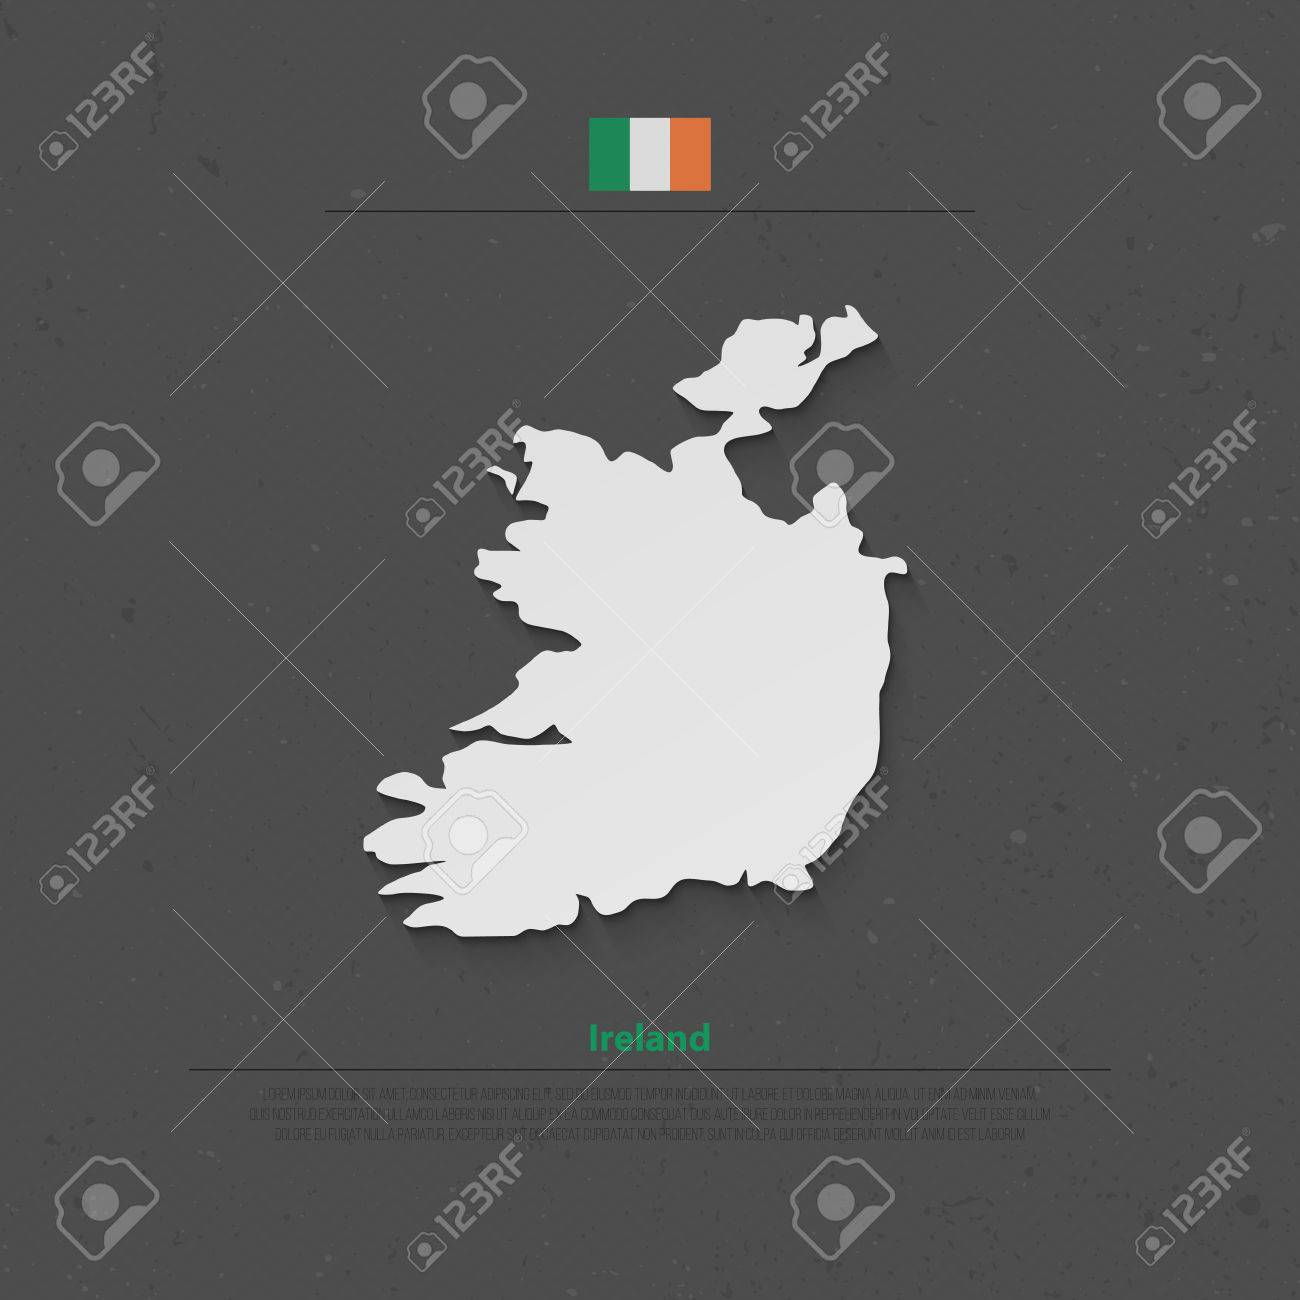 Republic Of Ireland Isolated Map And Official Flag Icons  Vector     Republic of Ireland isolated map and official flag icons  vector Irish  political map 3d illustration